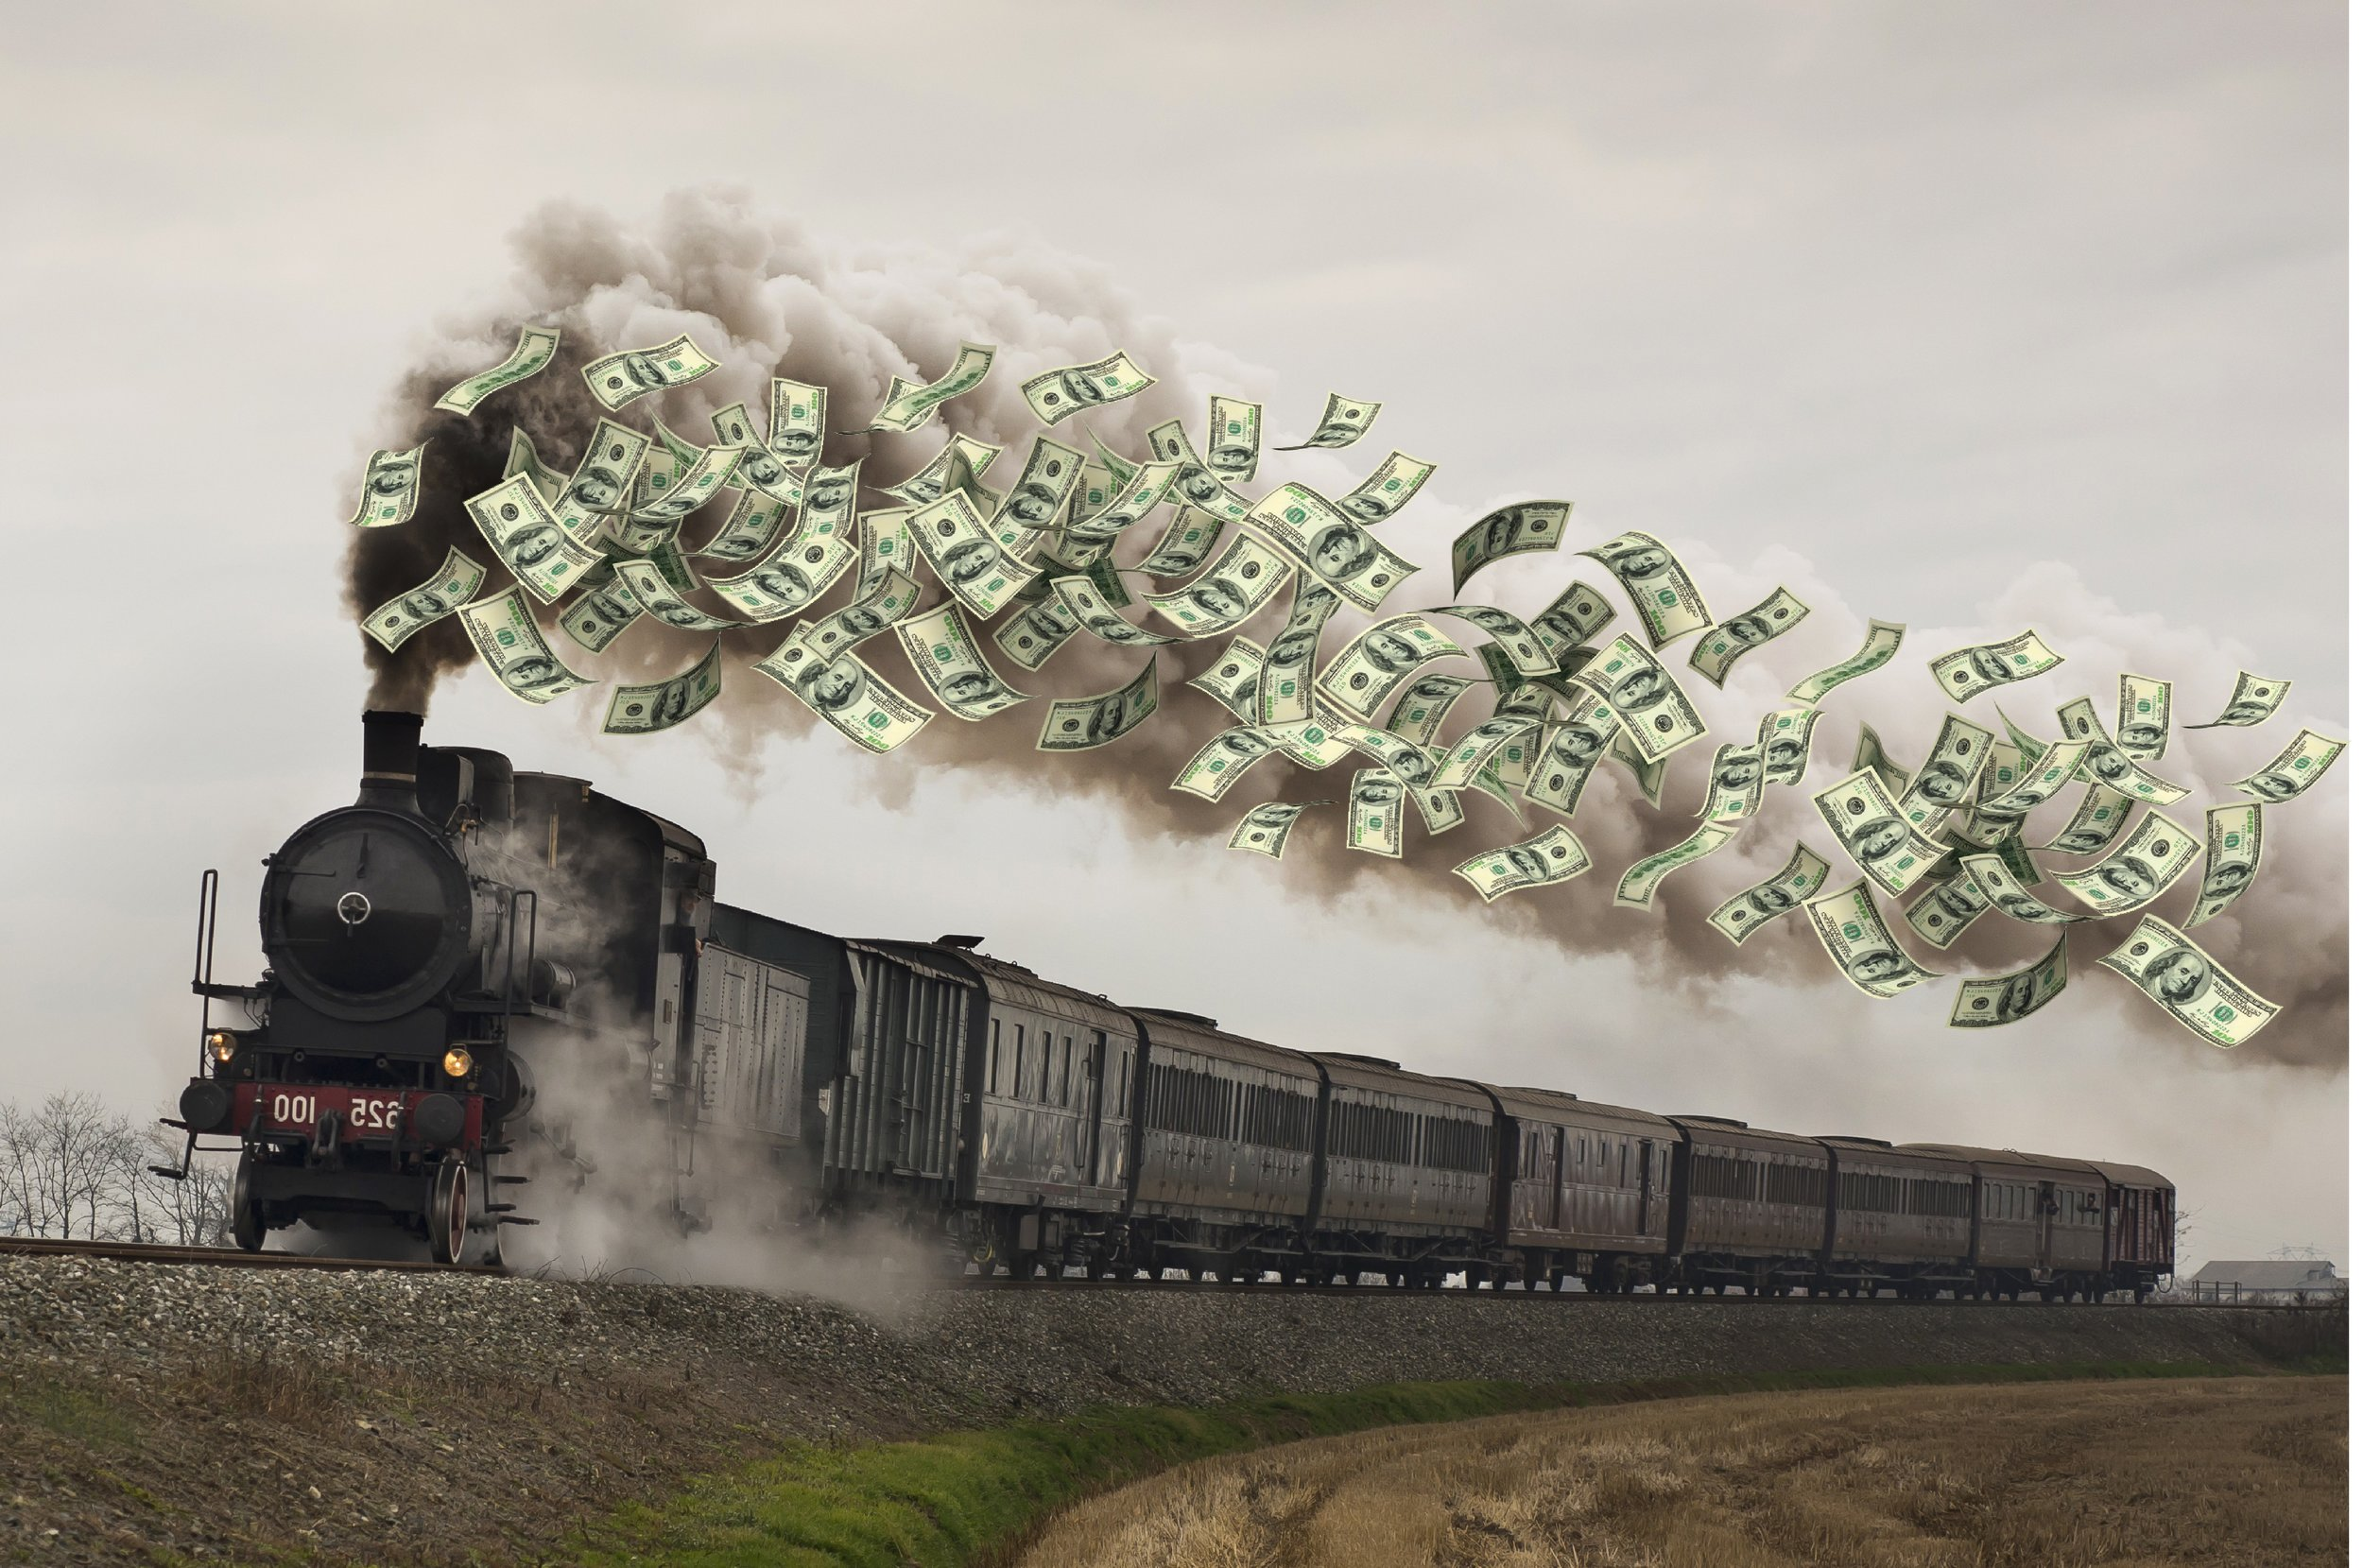 - All Aboard the Savings Train. We can help you plan for the future.